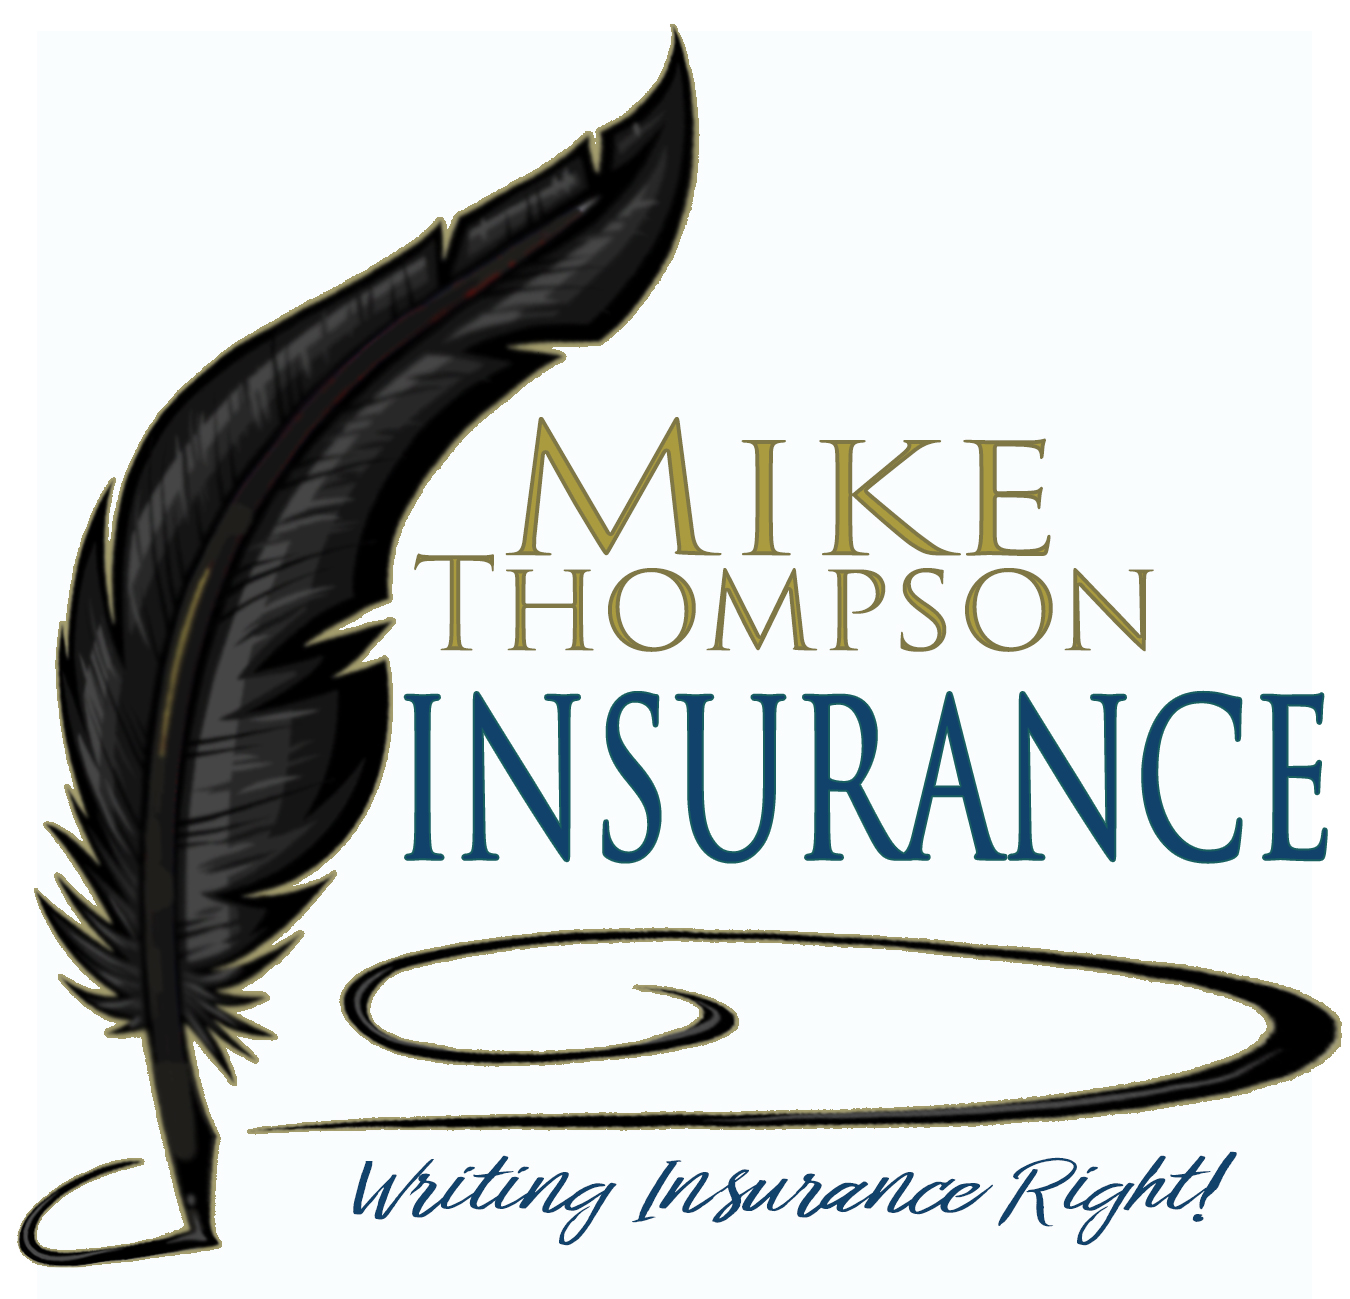 Mike Thompson Insurance